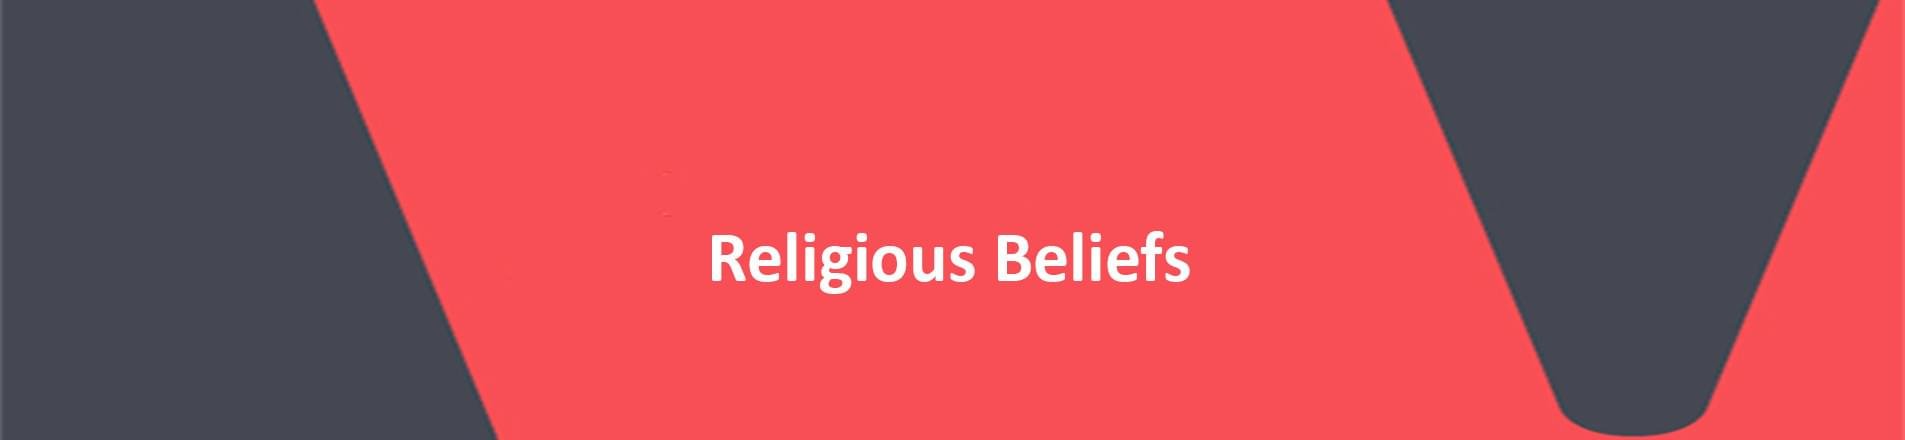 Image of the words religious beliefs on a red background